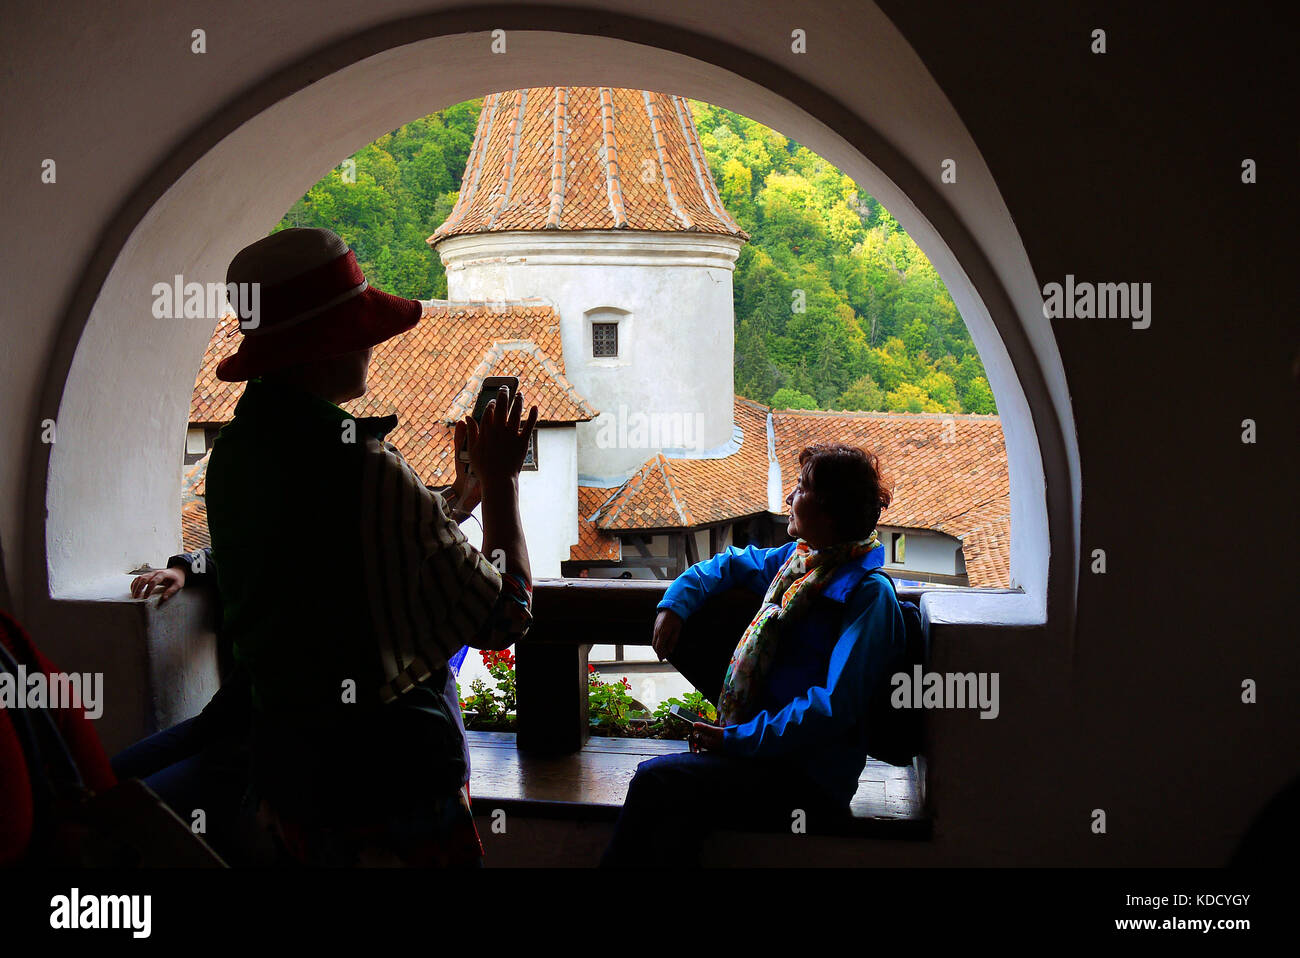 Tourists taking photographs with a smartphone at Bran Castle, Bran, Brasov, Romania. - Stock Image